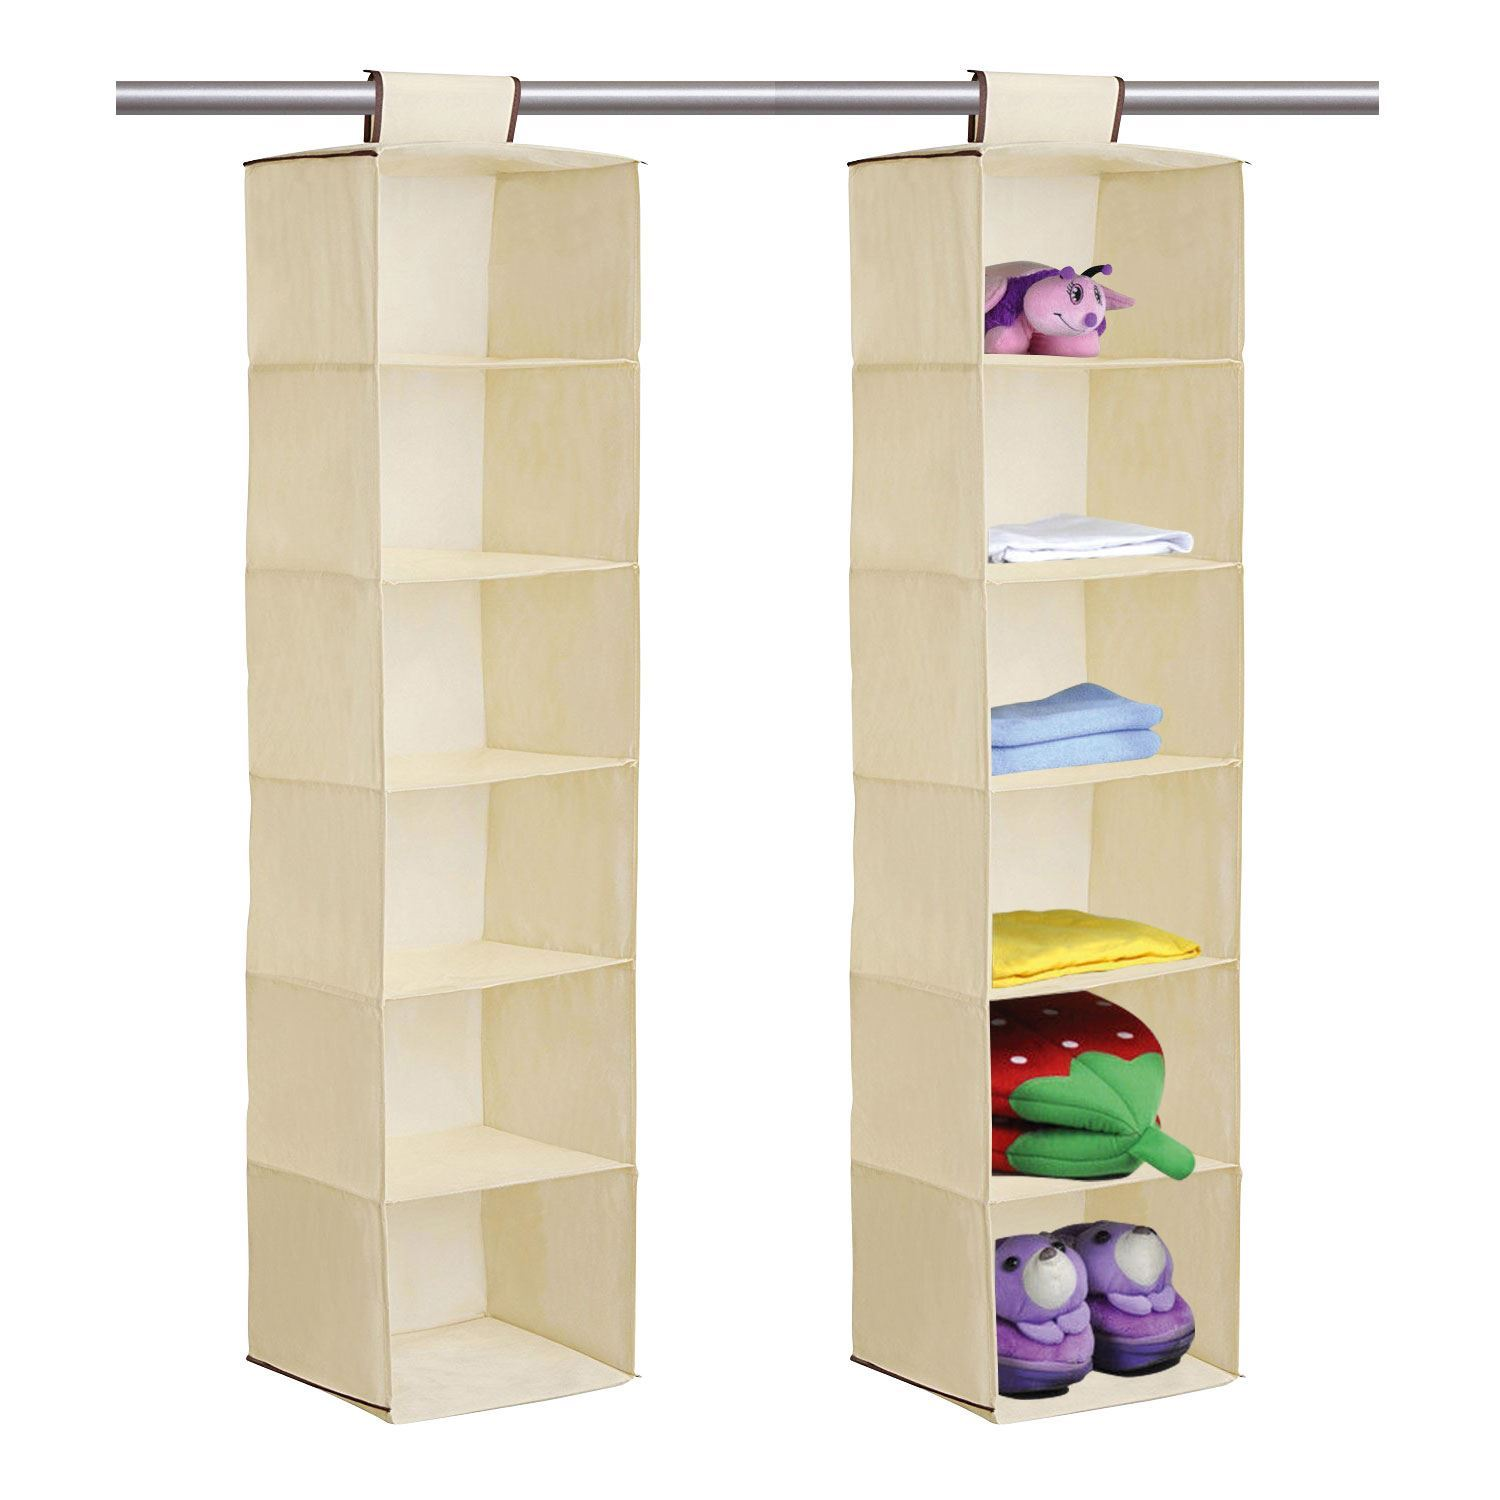 accessory storage hanging clothes with wardrobe and black collapsible for gift organizer closet maidmax shelves shoes product widen shelf velcros